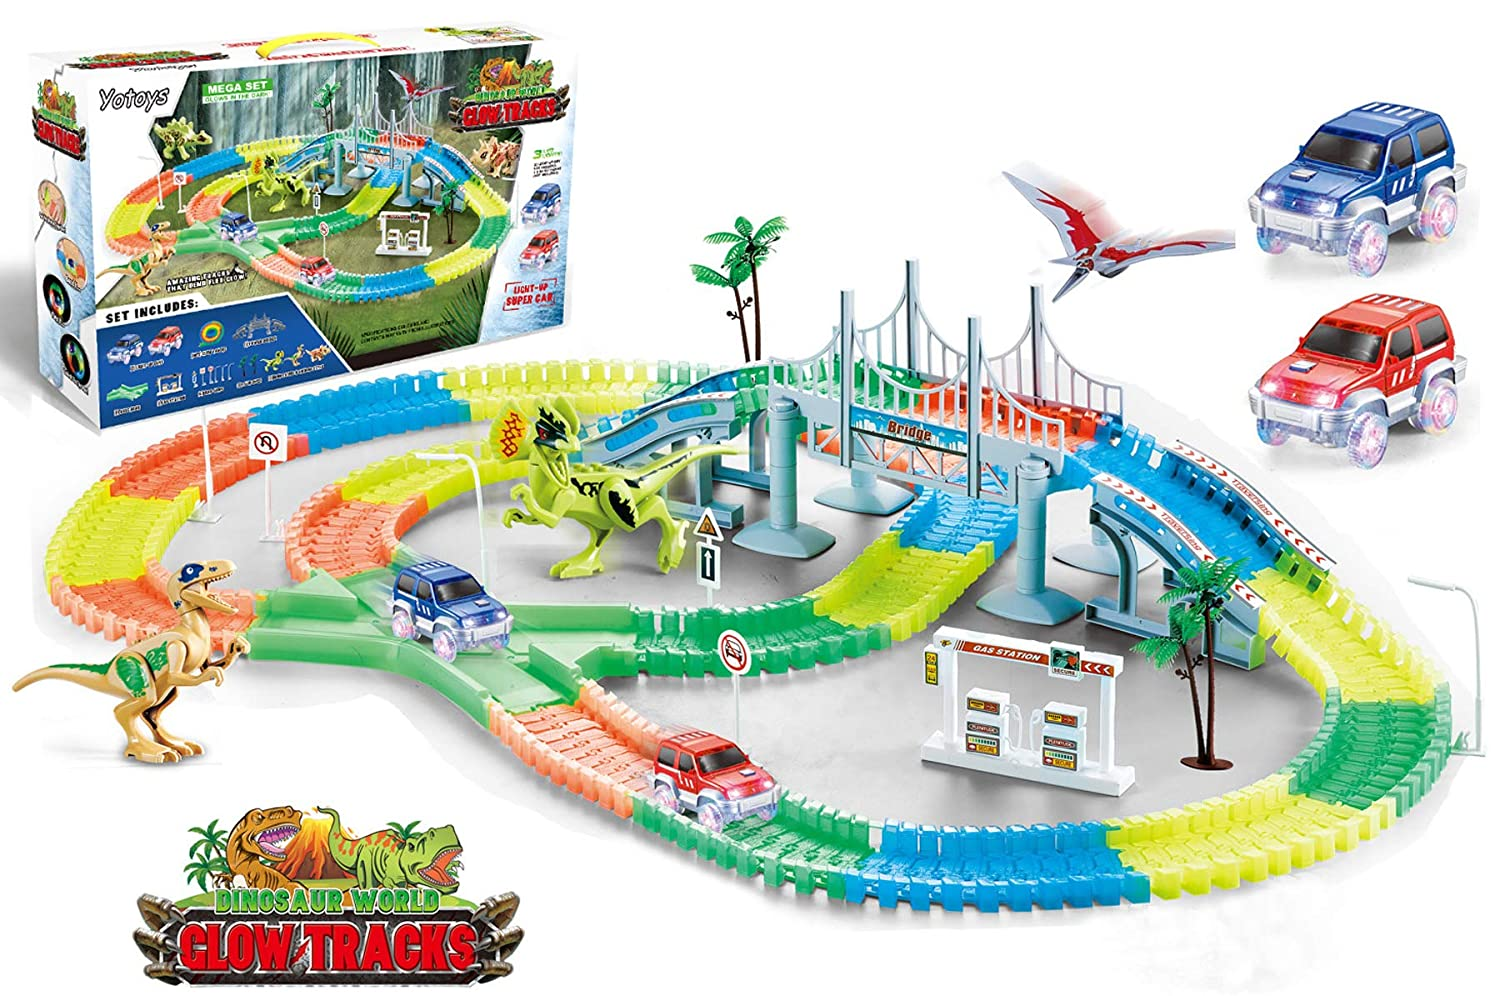 Yotoys 360 Pieces Flexible Bendable Track Set Glow in the Dark Racetrack for Kids with 2 Light-up Cars